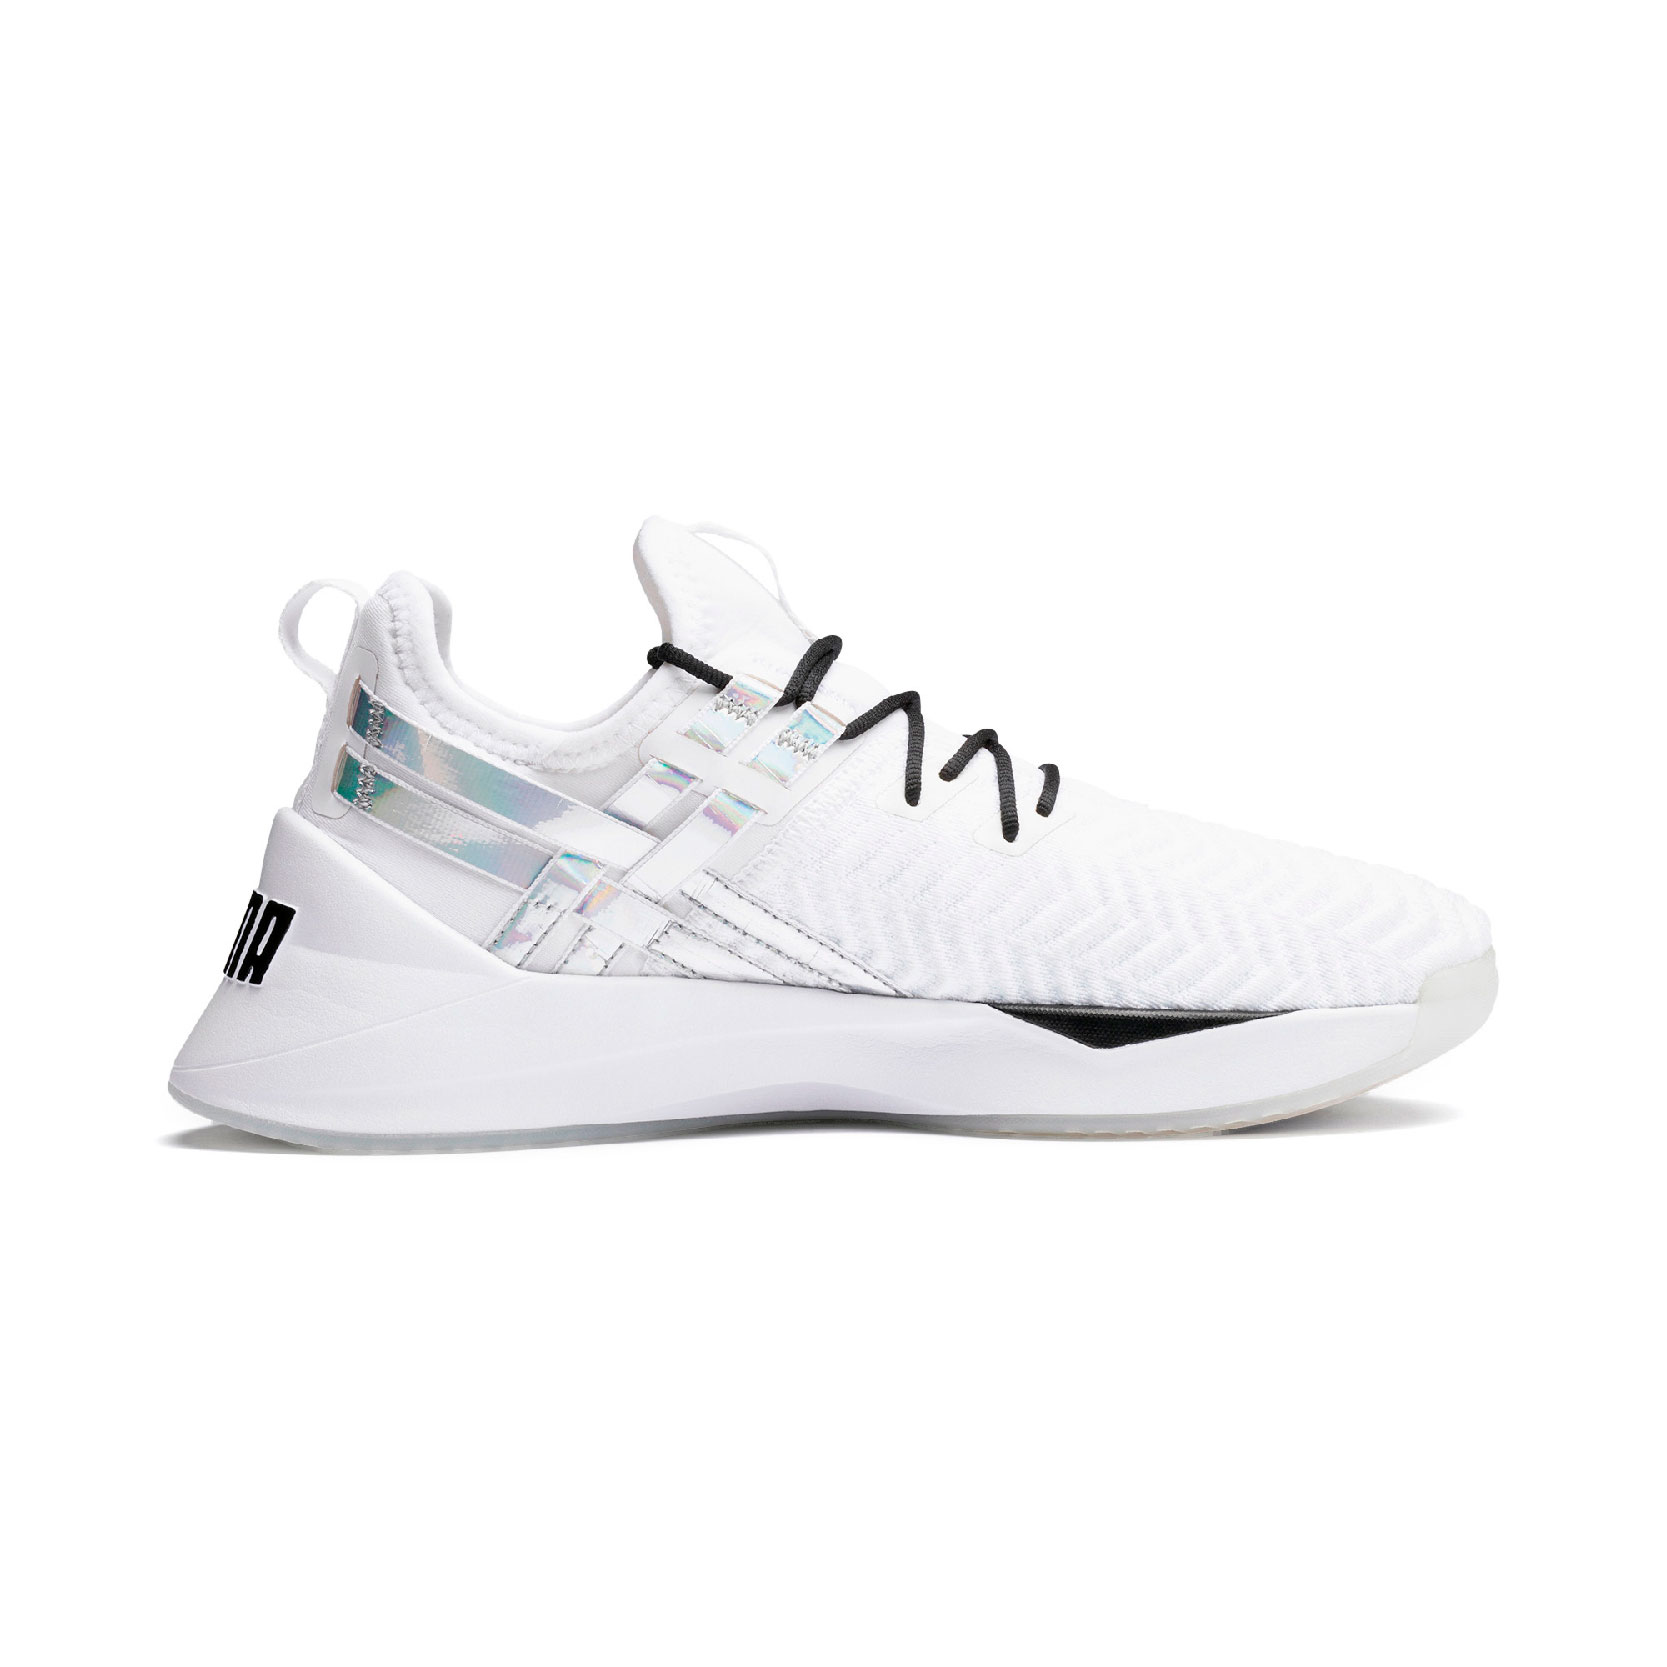 Puma Jaab XT Iridescent TZ Wn s Women Training Shoes 192240-02